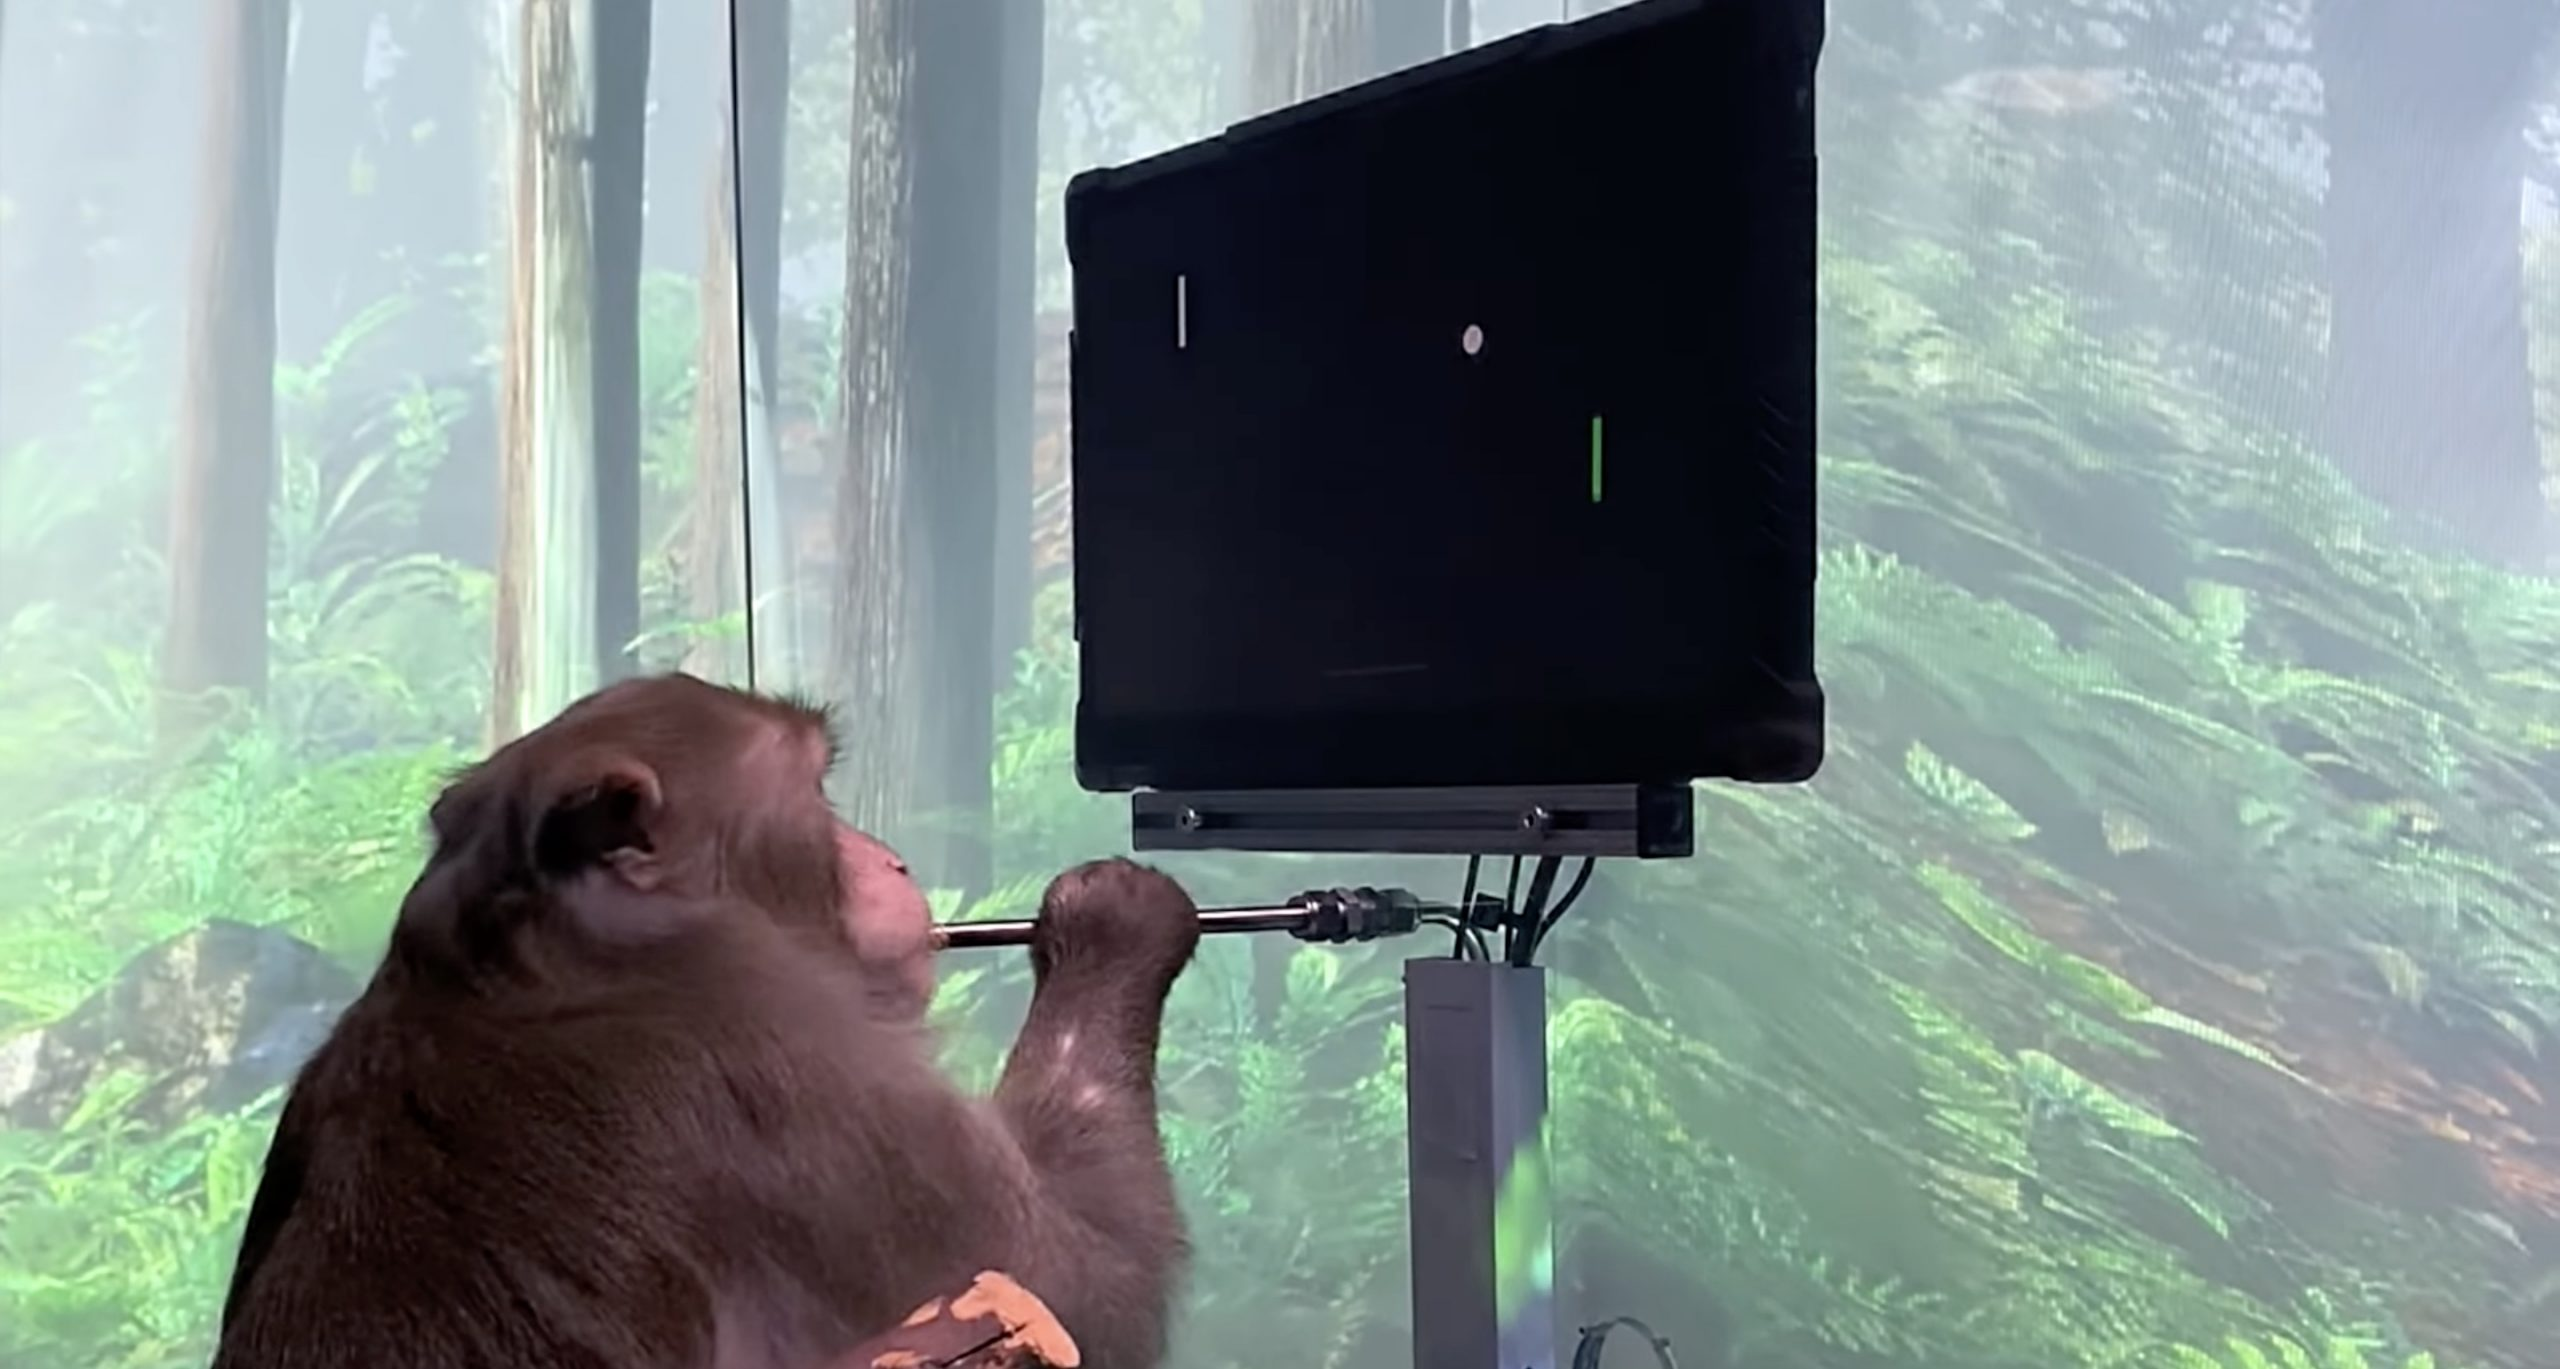 elon-musk-NeuraLink-monkey-mind-control-game-video